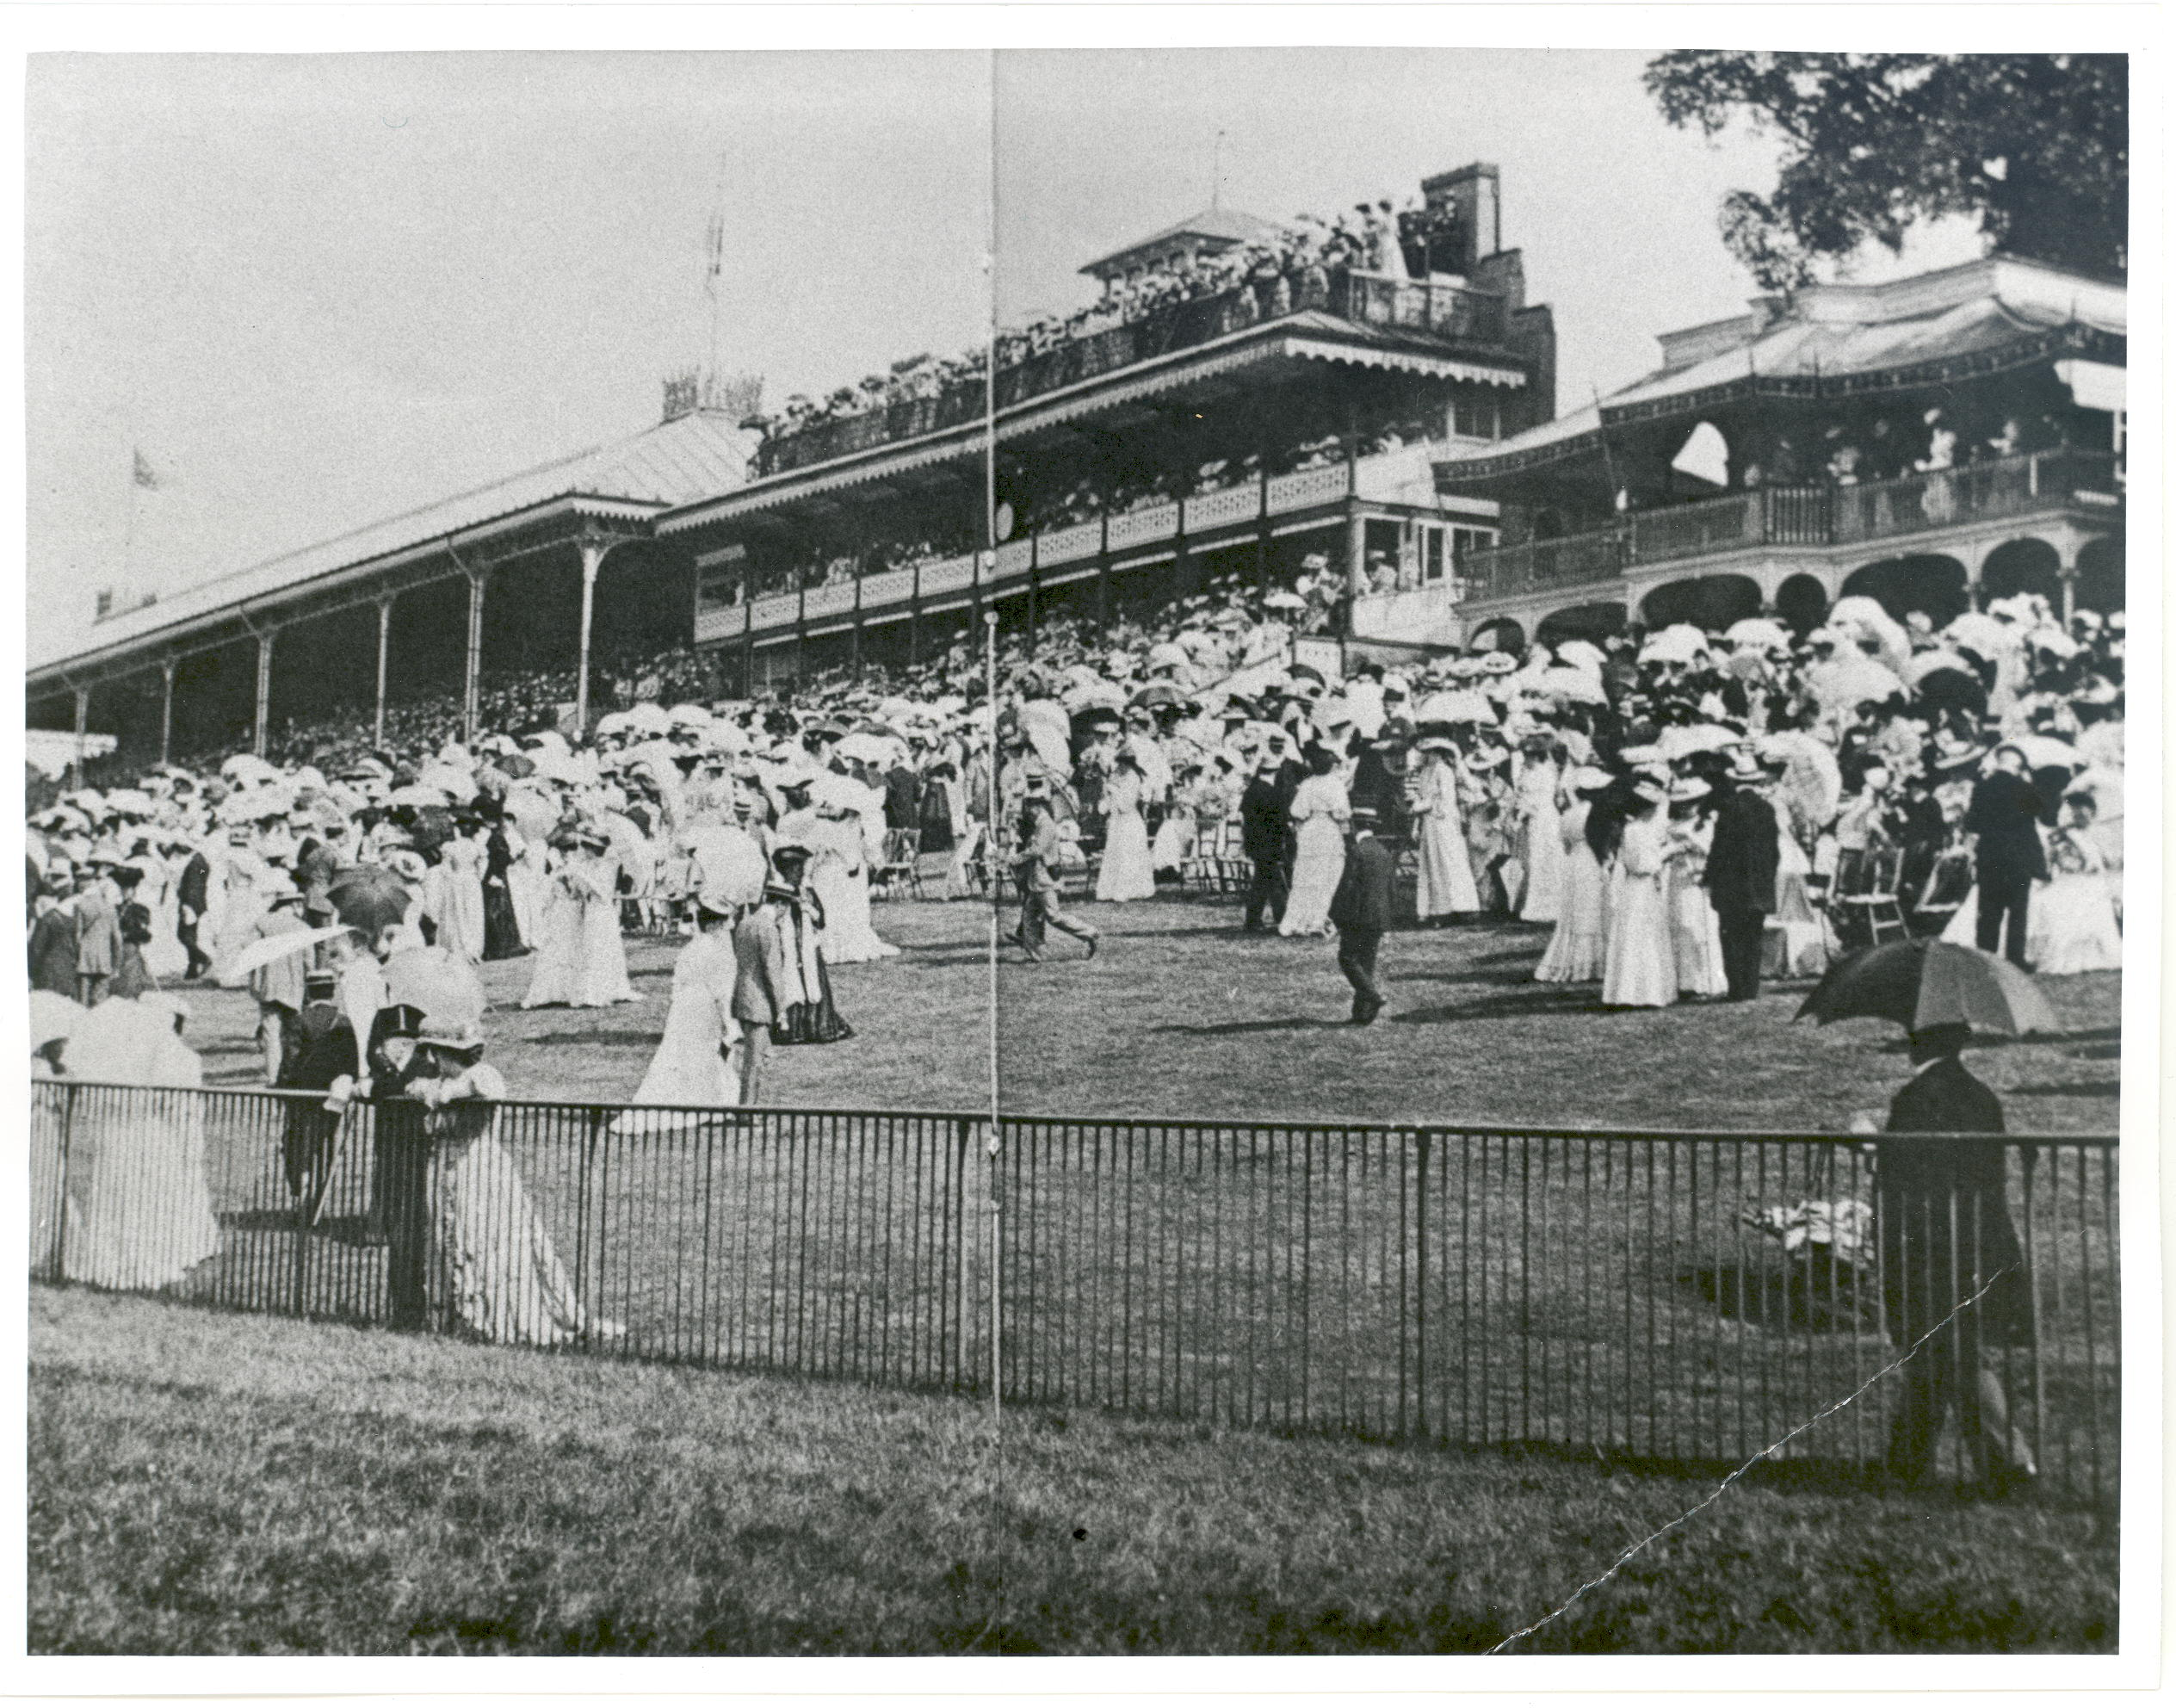 Photo of crowds in the Grandstand at the Sandown races, 1890s.